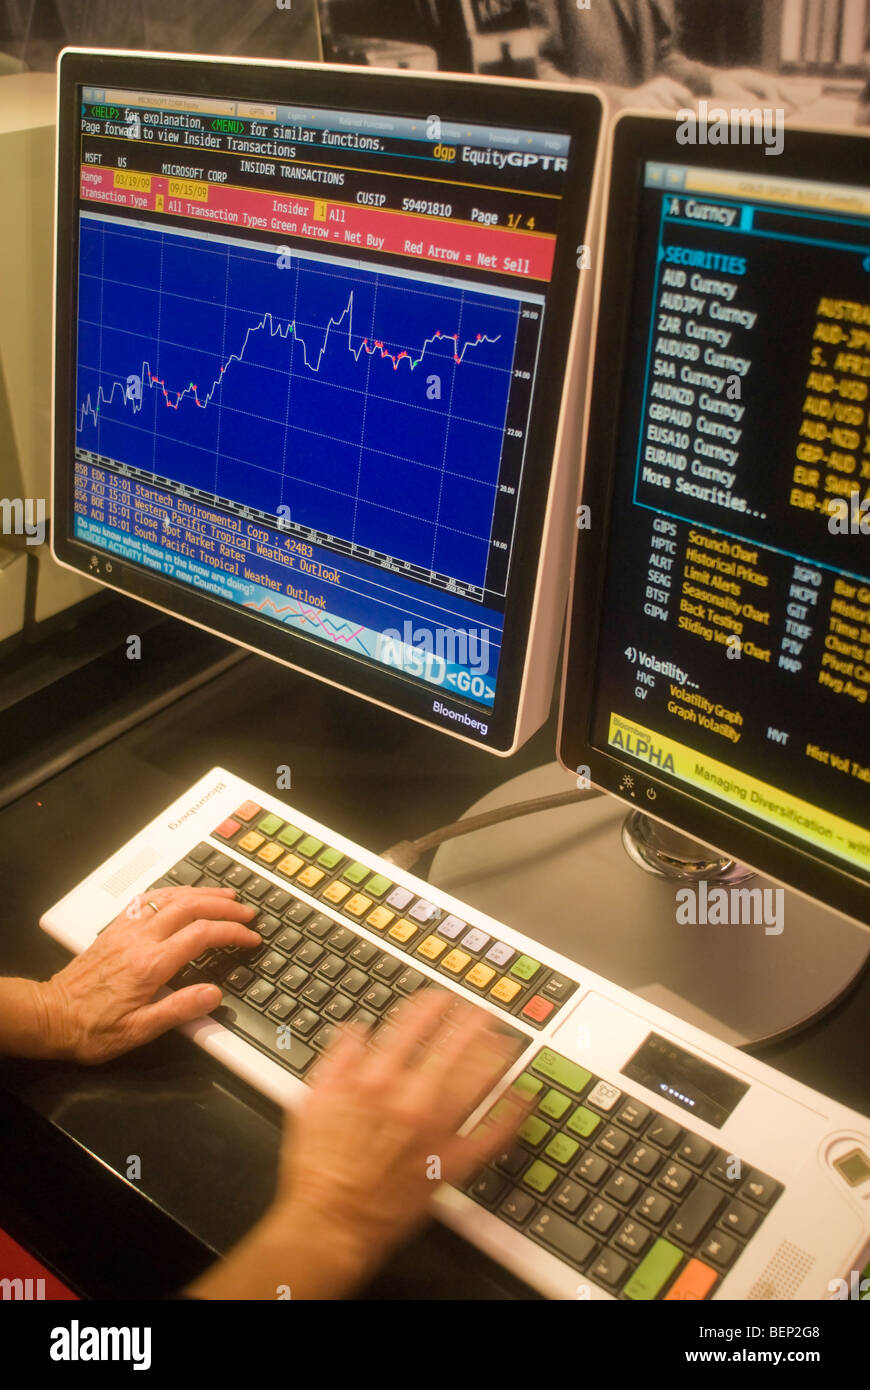 A Bloomberg LP financial data terminal - Stock Image